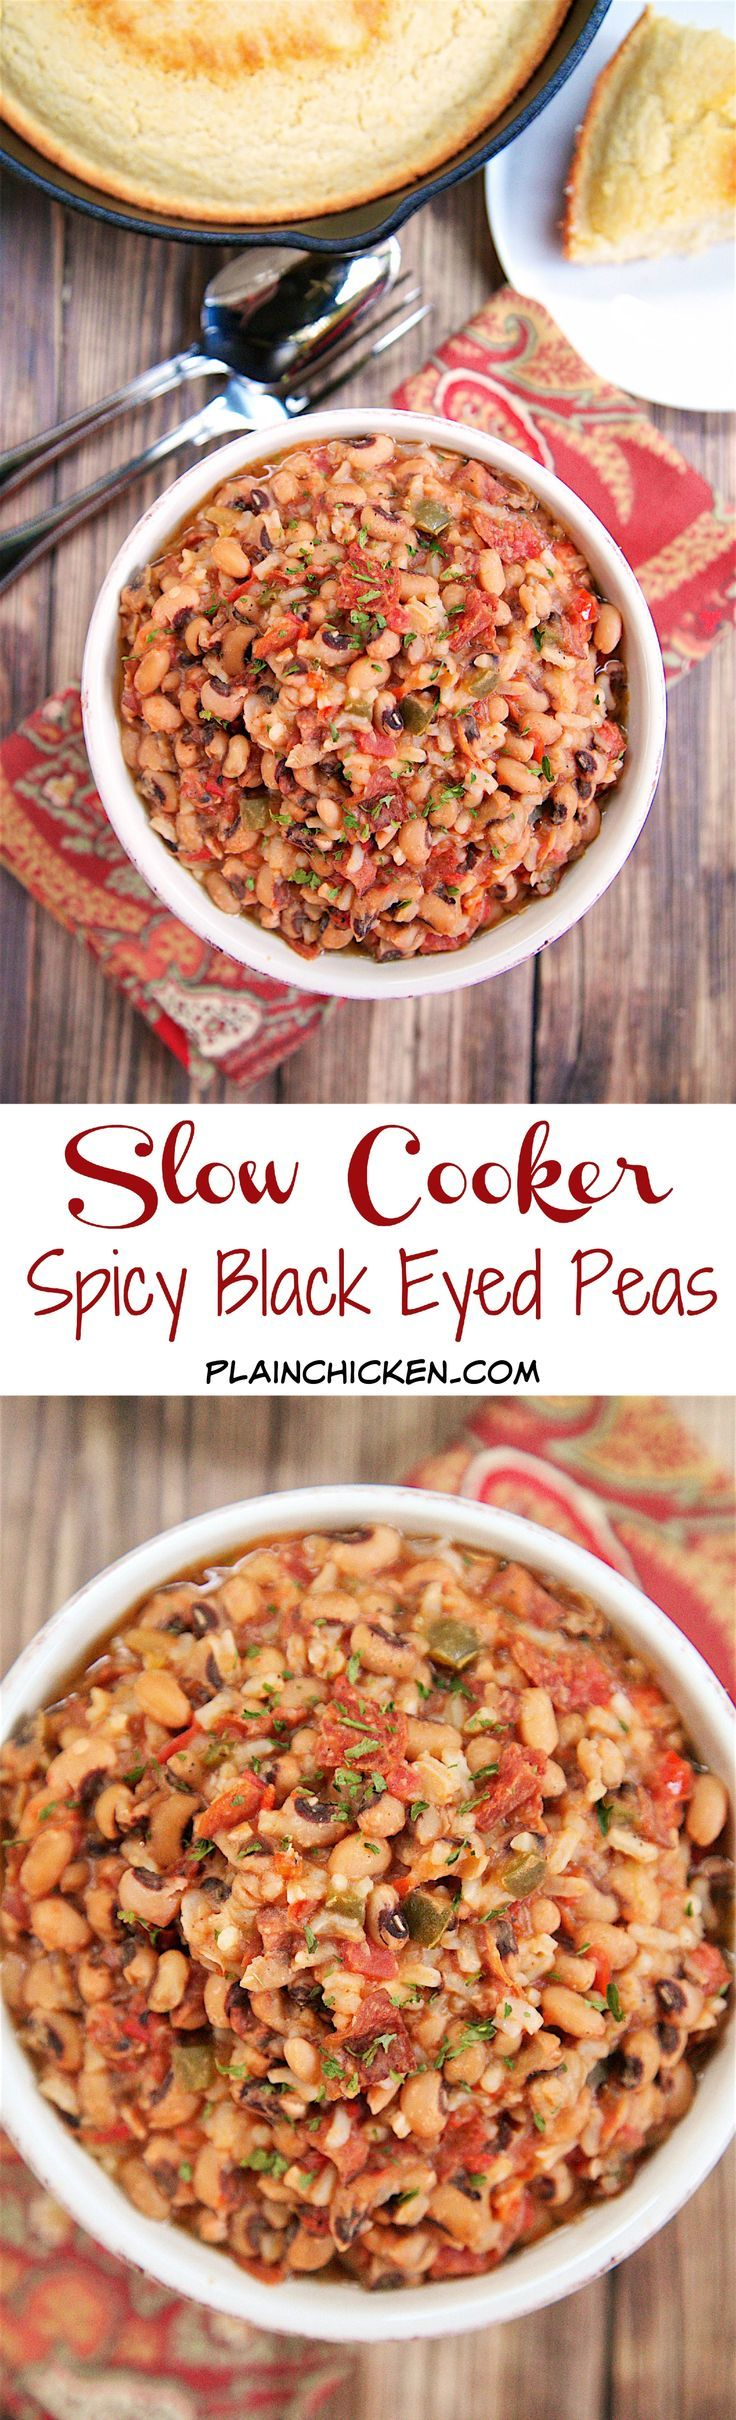 Slow Cooker Spicy Black Eyed Peas - black eyed peas, chicken broth, green onions, tomatoes, jalapeños, red pepper, pepperoni and rice. It is a meal in itself! Just add some greens and cornbread to complete the New Year's Day spread!